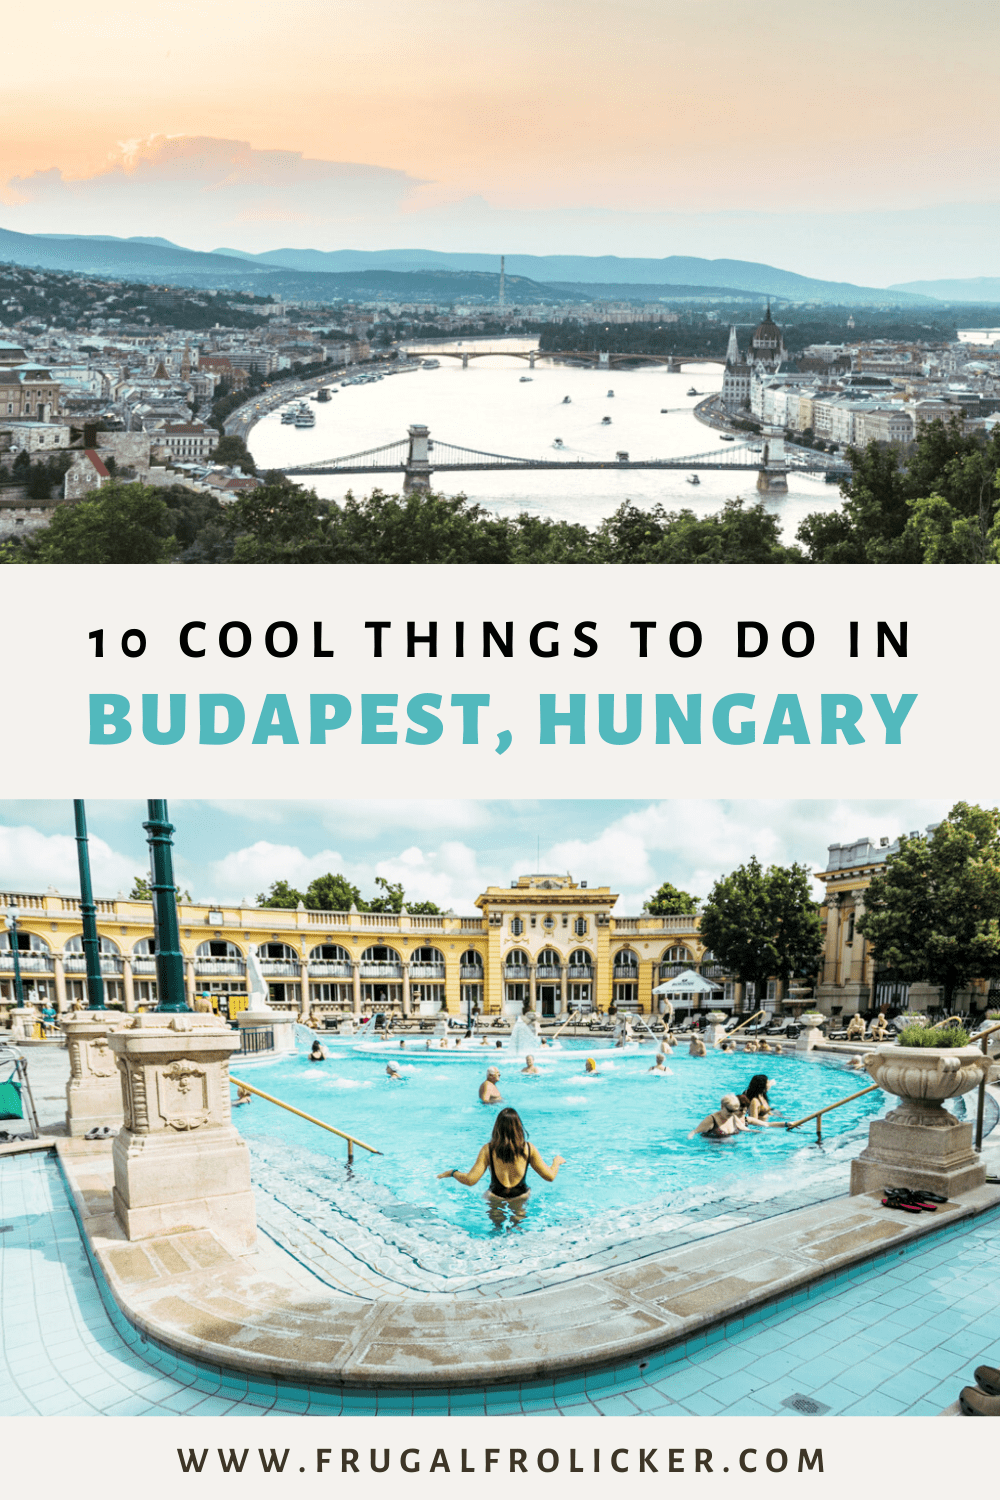 10 Cool things to do in Budapest, Hungary